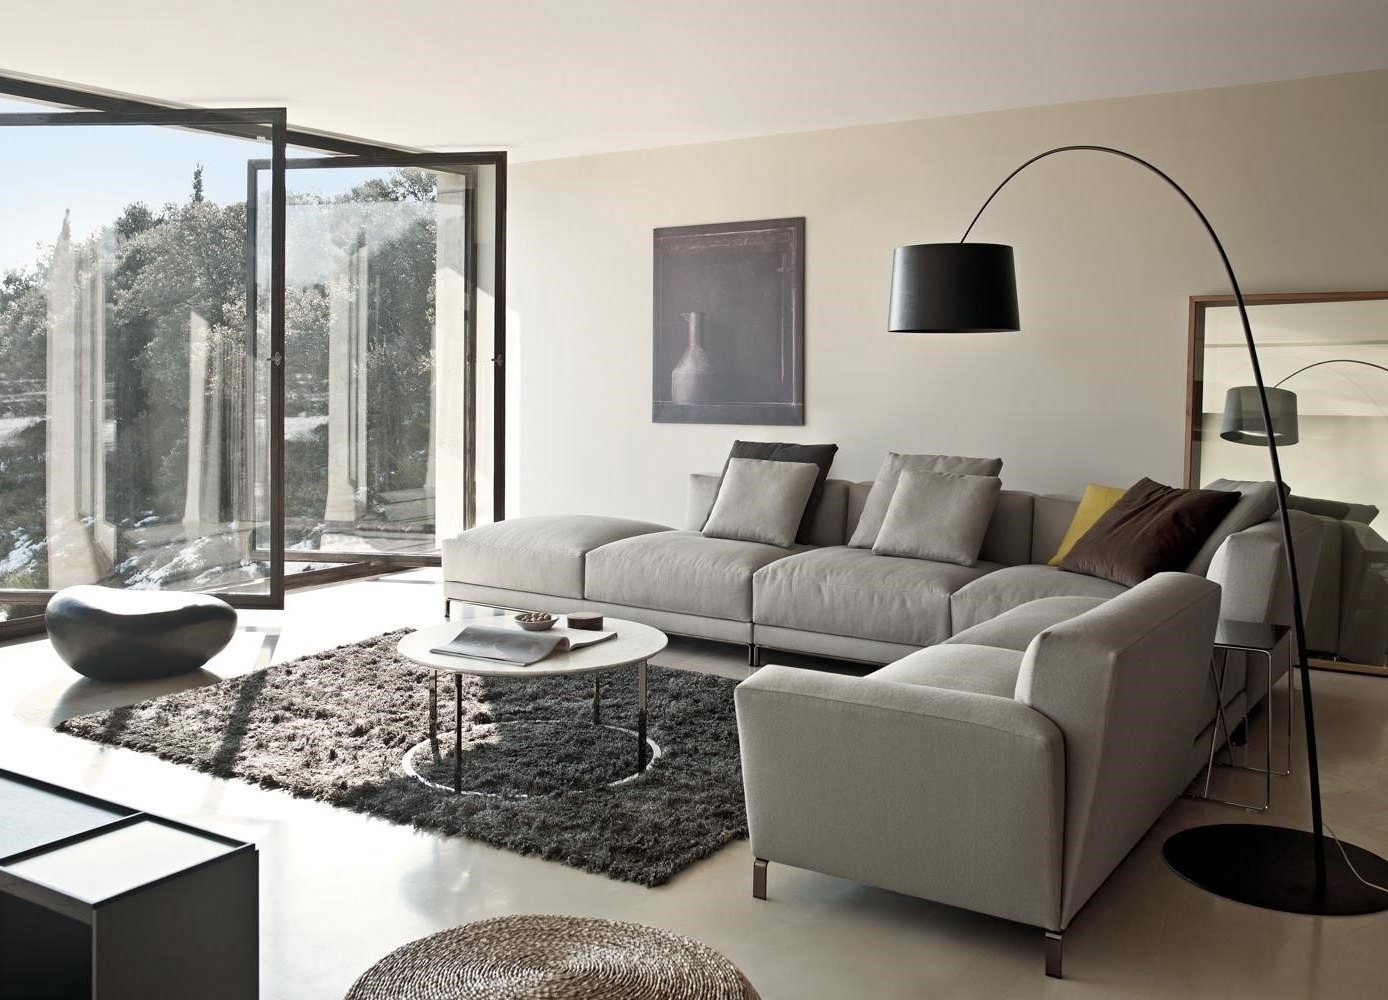 How To Decorate A Living Room With A Sectional Couch Sectional Regarding Most Popular Sectional Sofas Decorating (View 8 of 20)